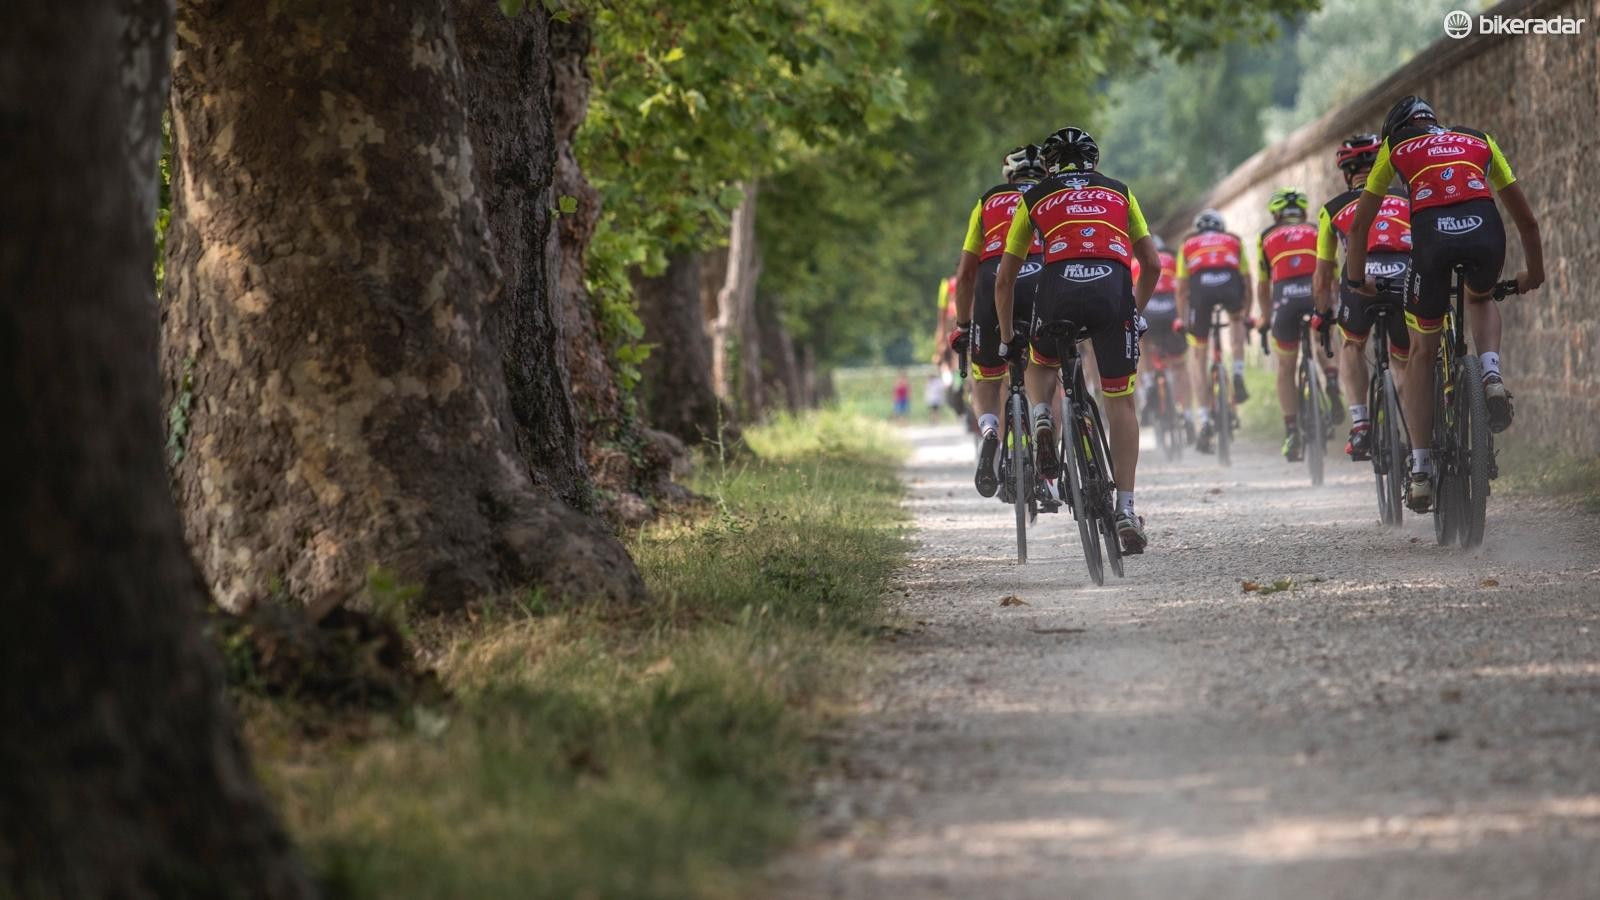 The Cento10NDR was exceedingly comfortable over the loose gravel sections